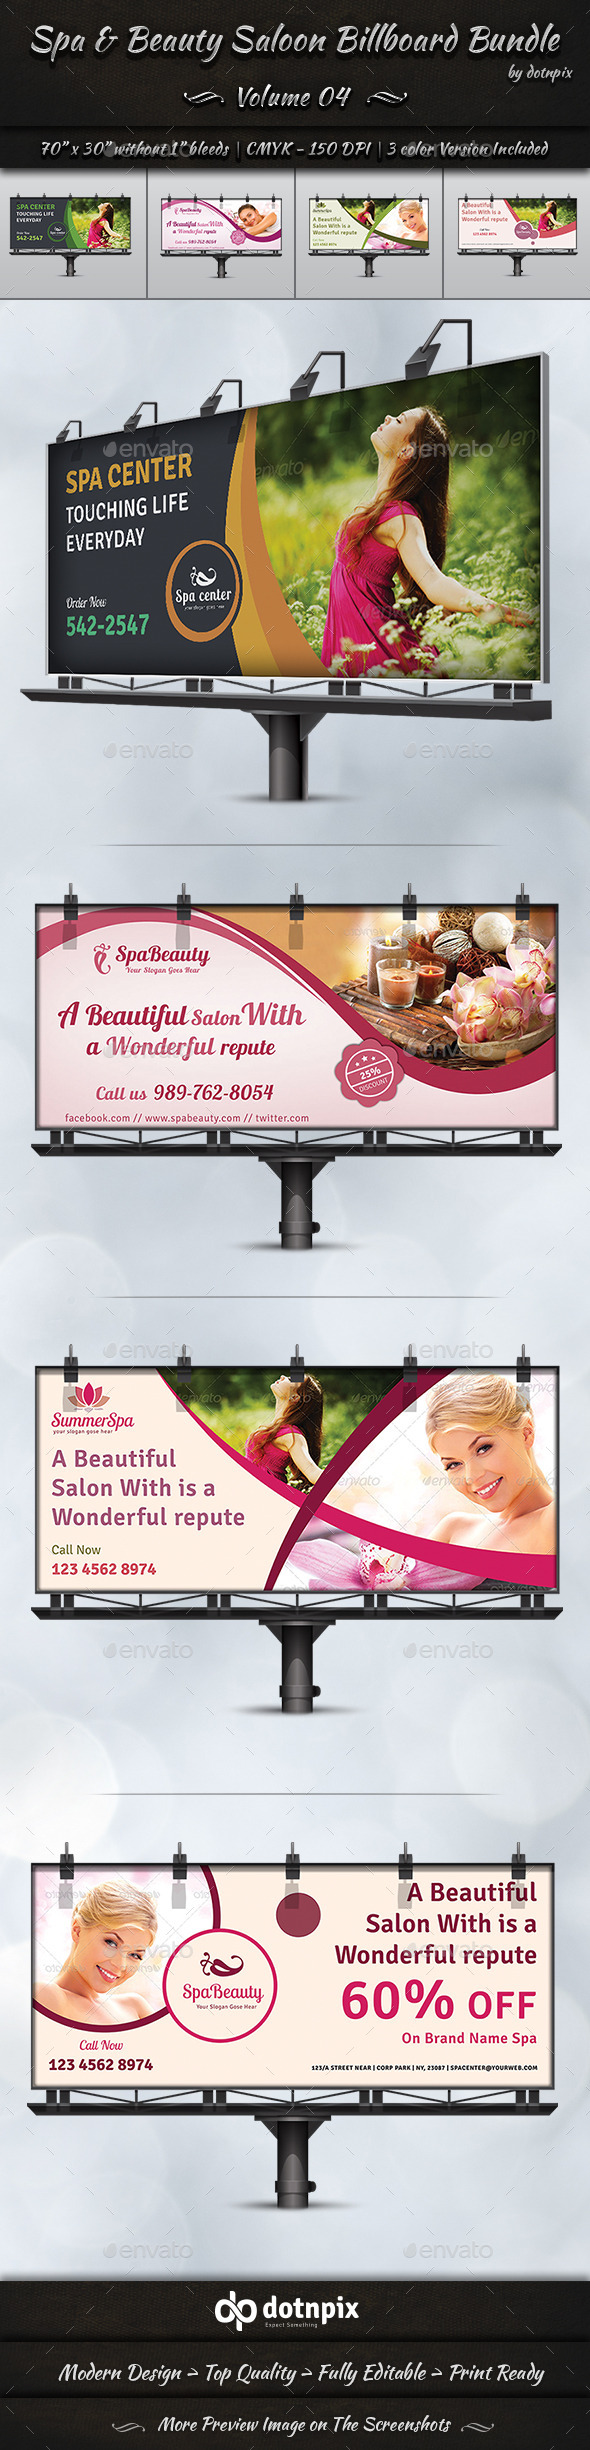 GraphicRiver Spa & Beauty Saloon Billboard Bundle Volume 4 9060771